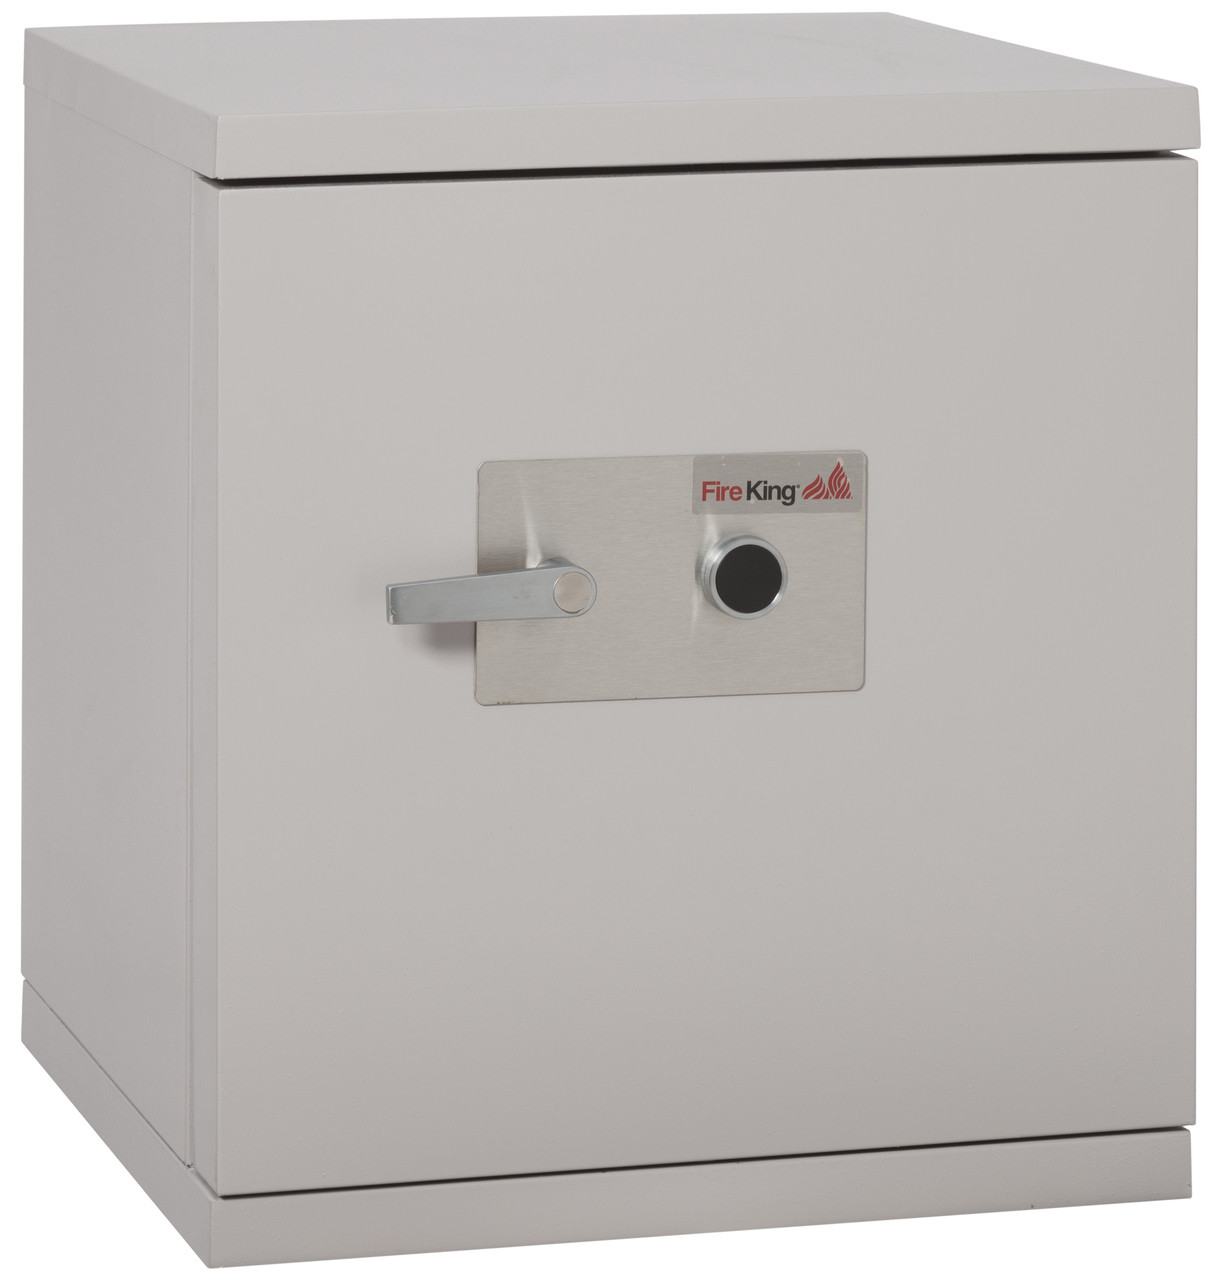 FireKing-1-Hour Fire Rated - UL Class 125 Fire/equipped with keylock-DS1817